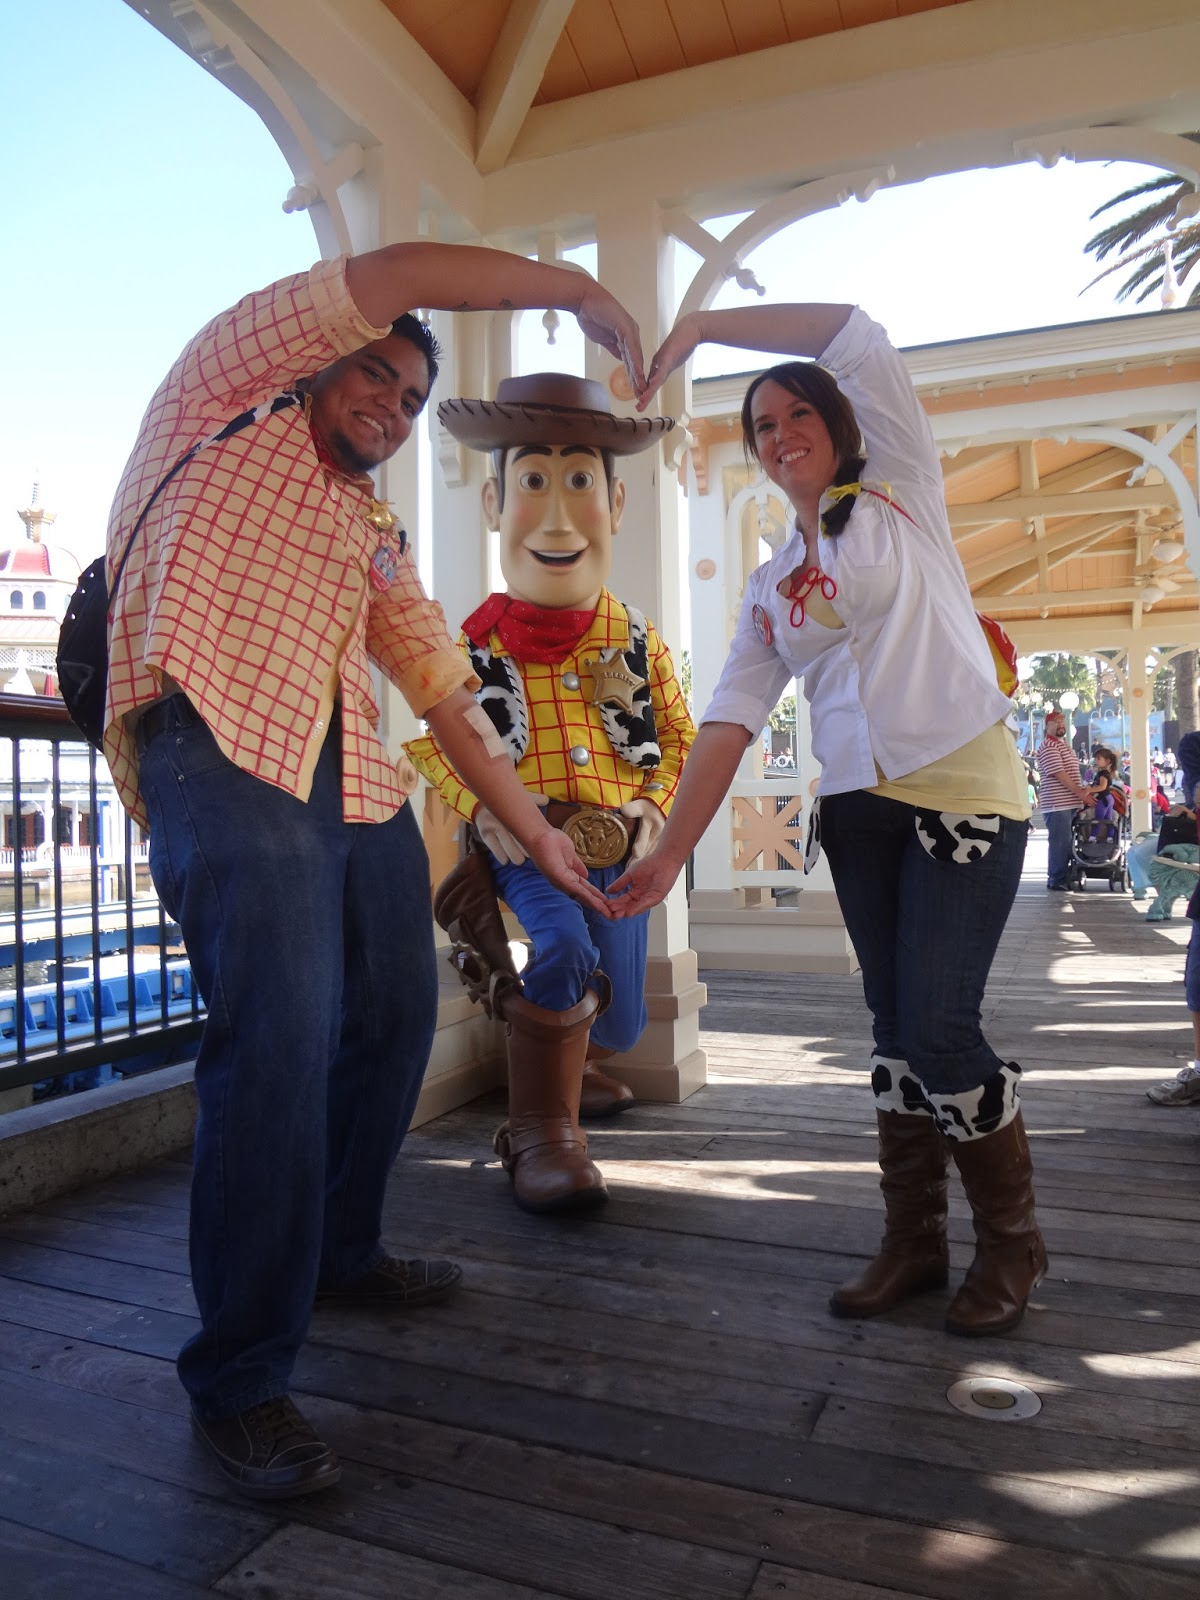 The busy broad diy adult jessie and woody costumes making the heart was woodys idea solutioingenieria Images